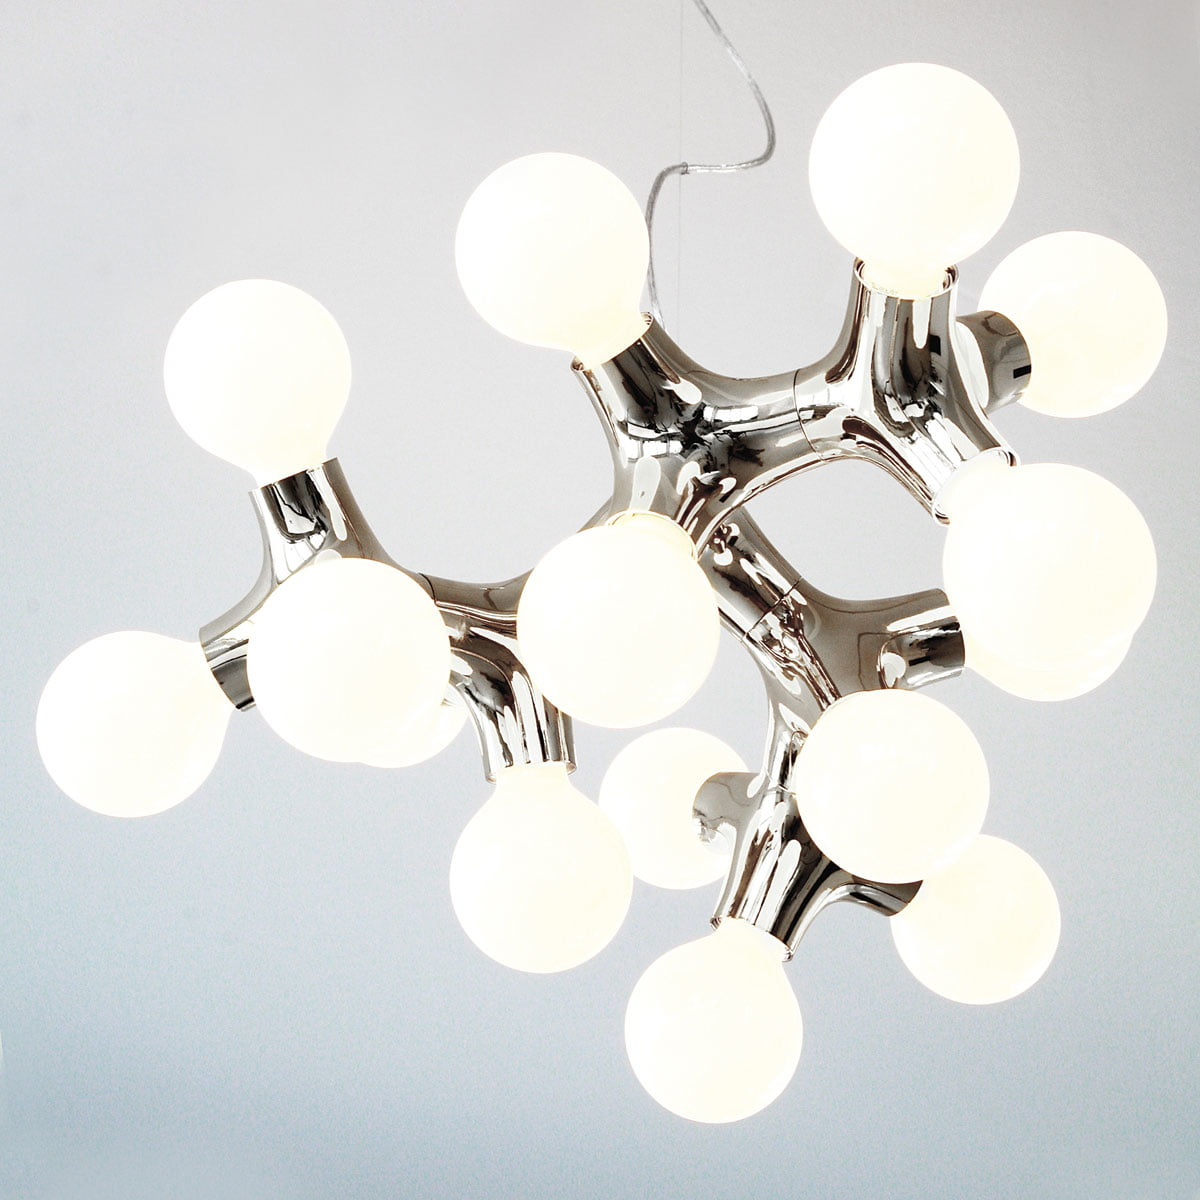 Dna pendant lamp by hopf wortmann for next next dna pendant lamp chandelier chrome aloadofball Image collections